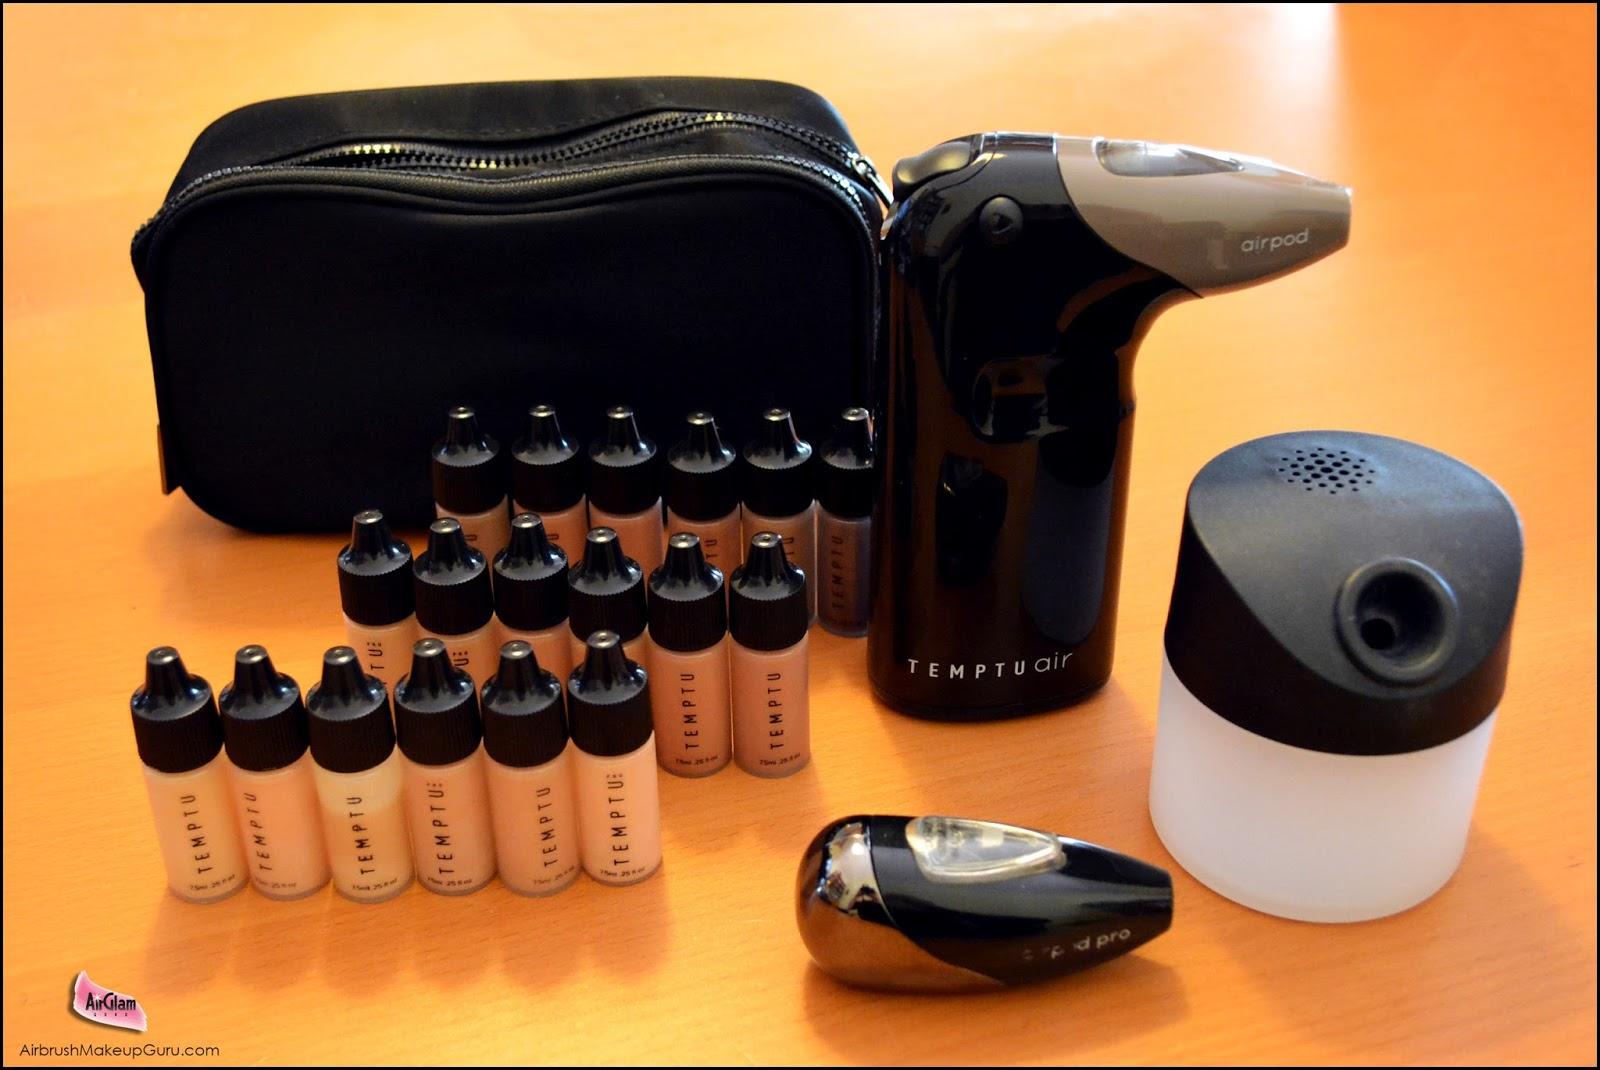 The Temptu Air Kit with Airpod Pro and Hydralock Foundation